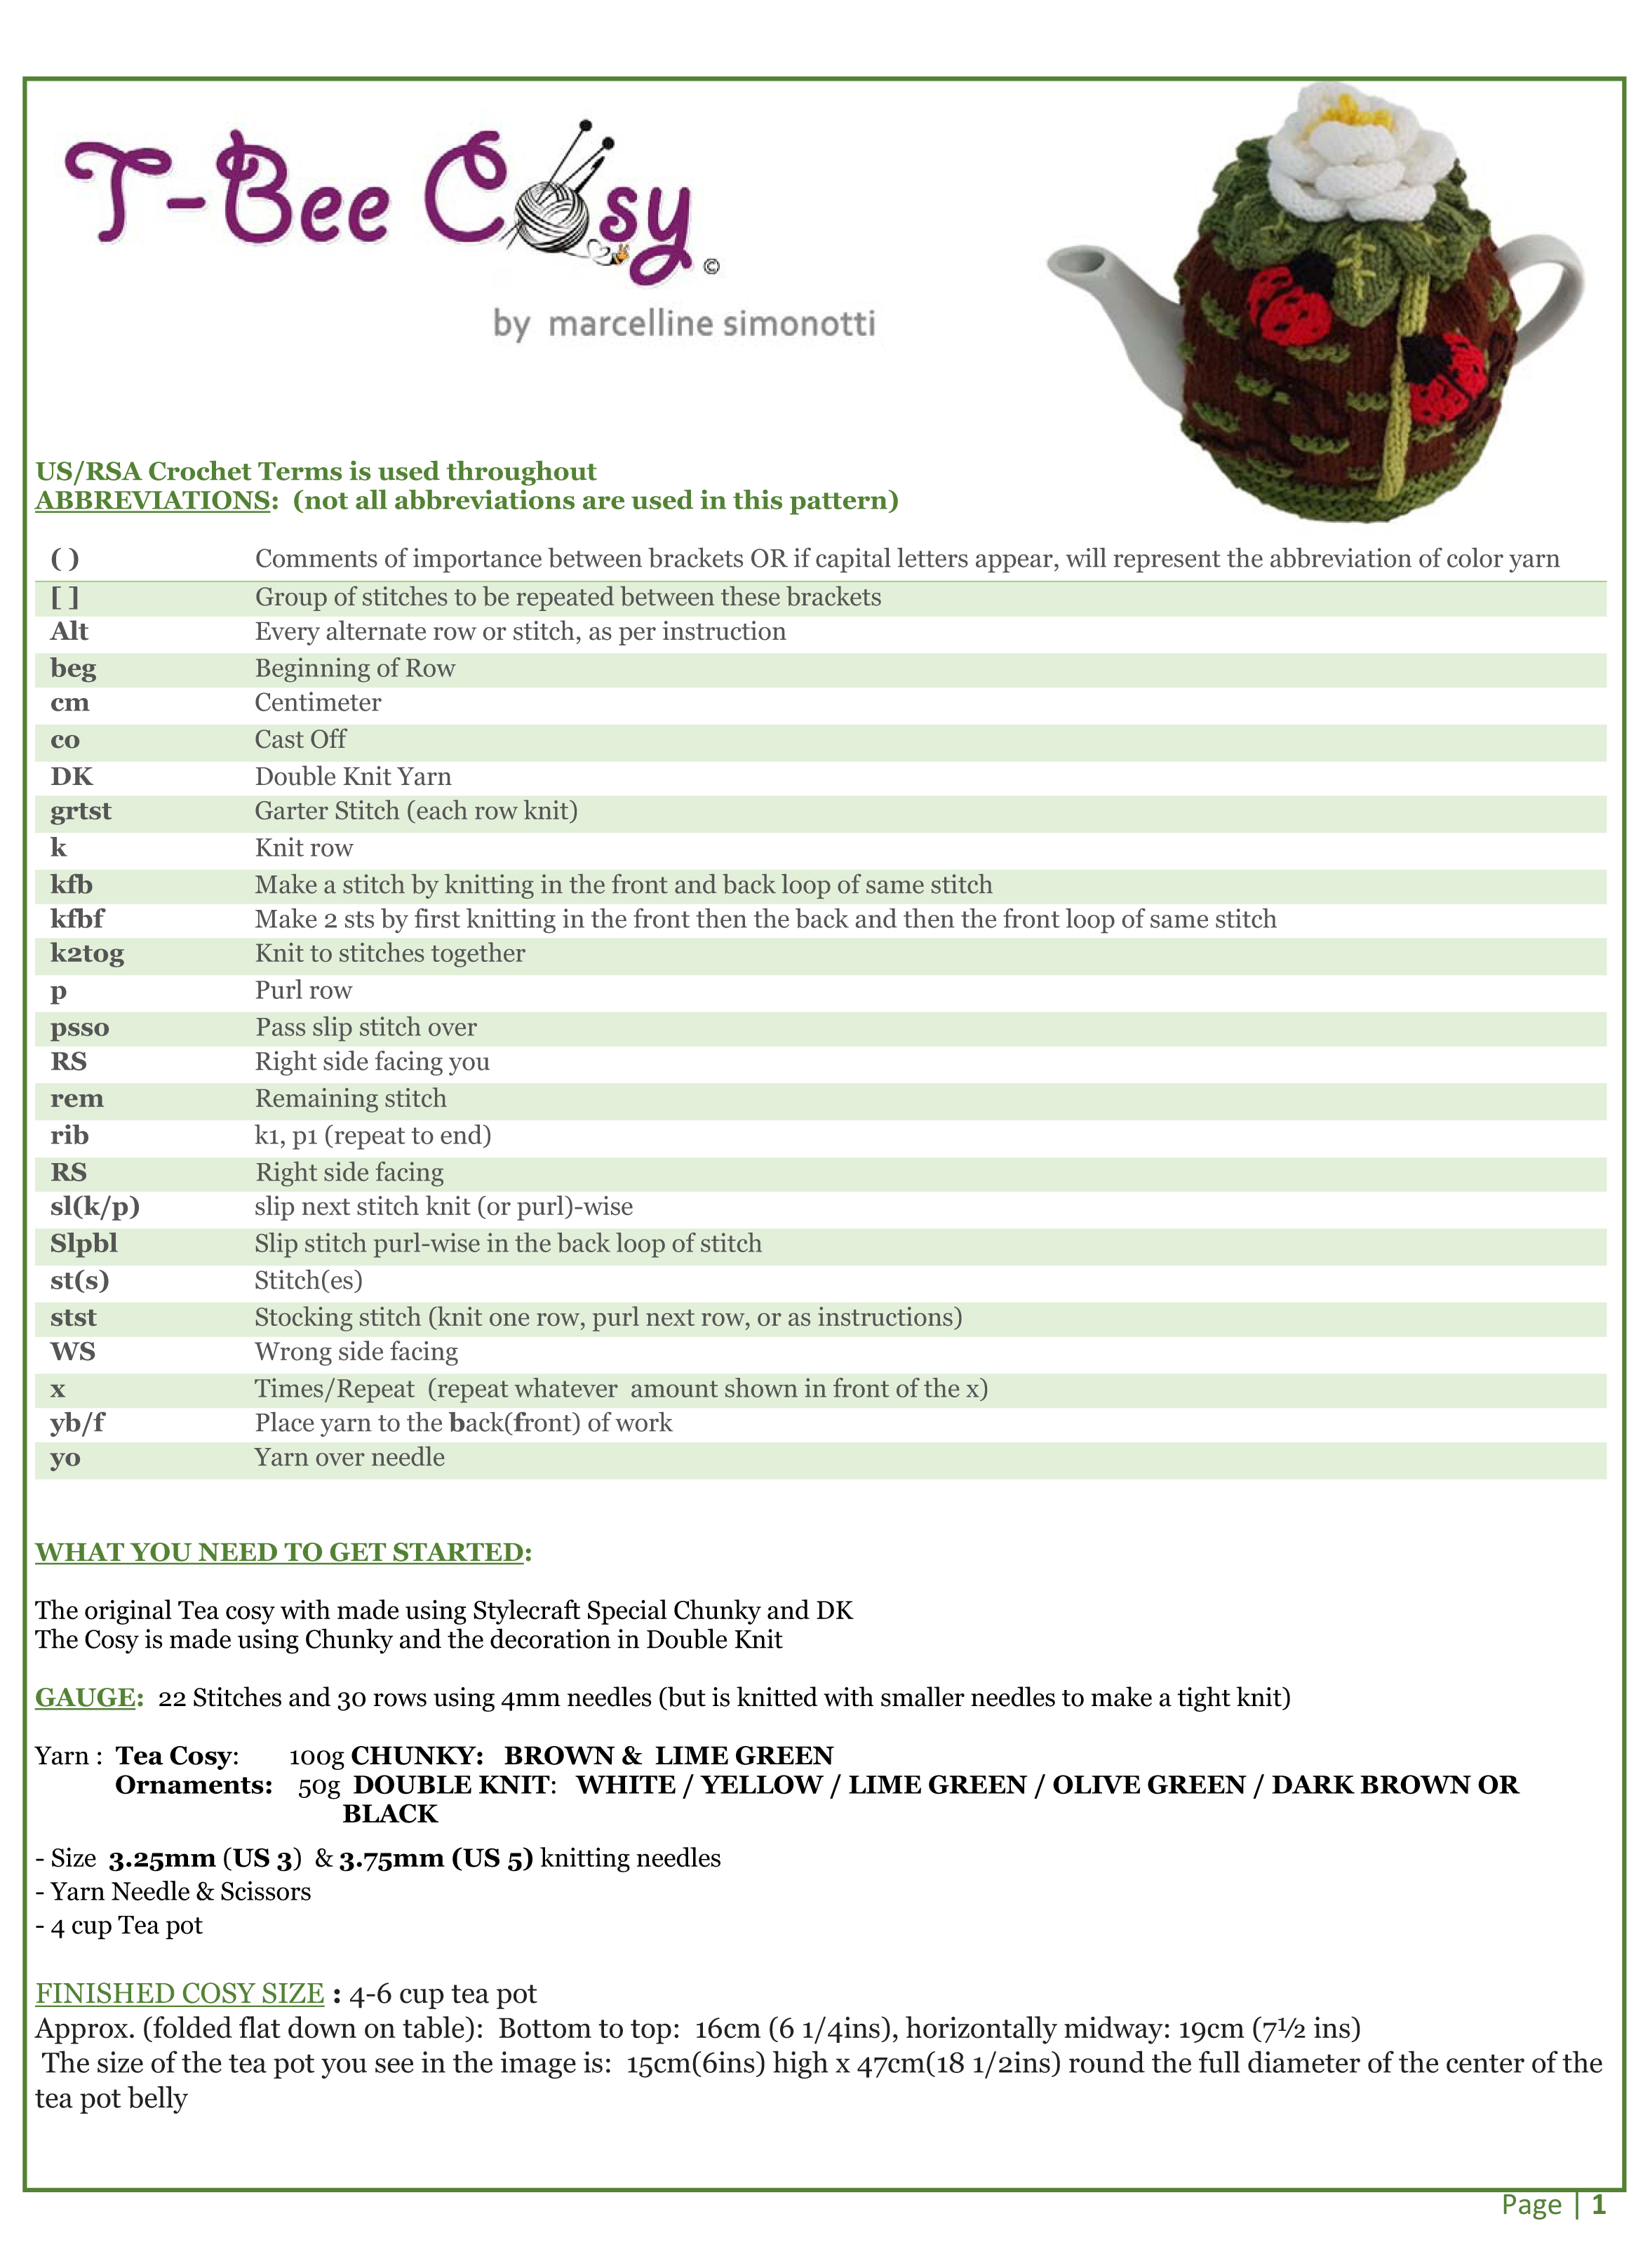 classic white rose tea cosy INFO SHEET